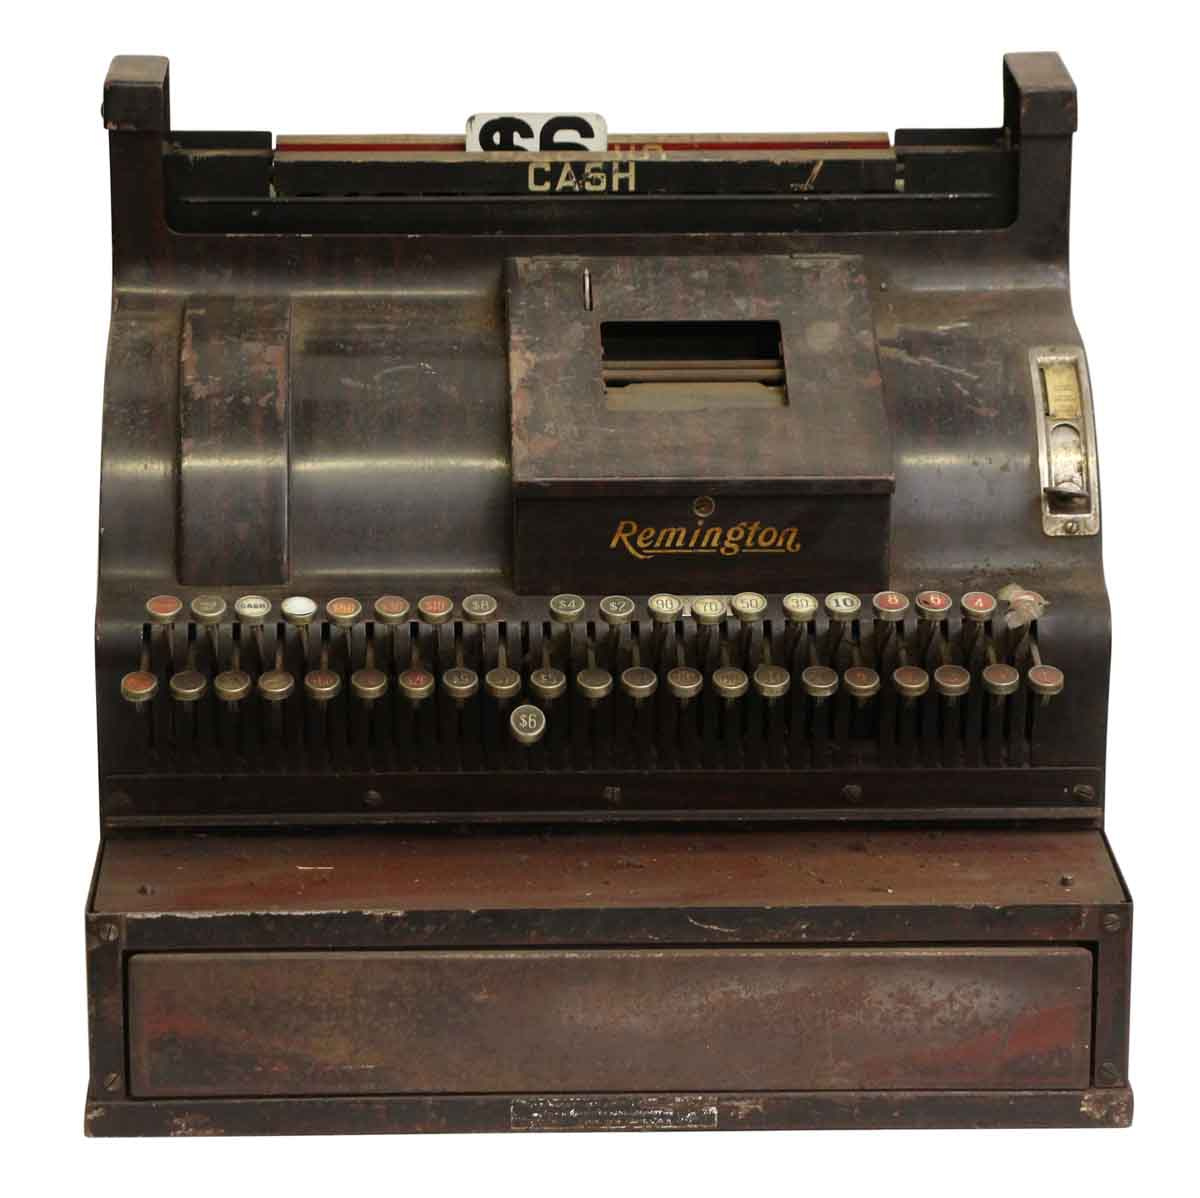 Olde Remington Cash Register